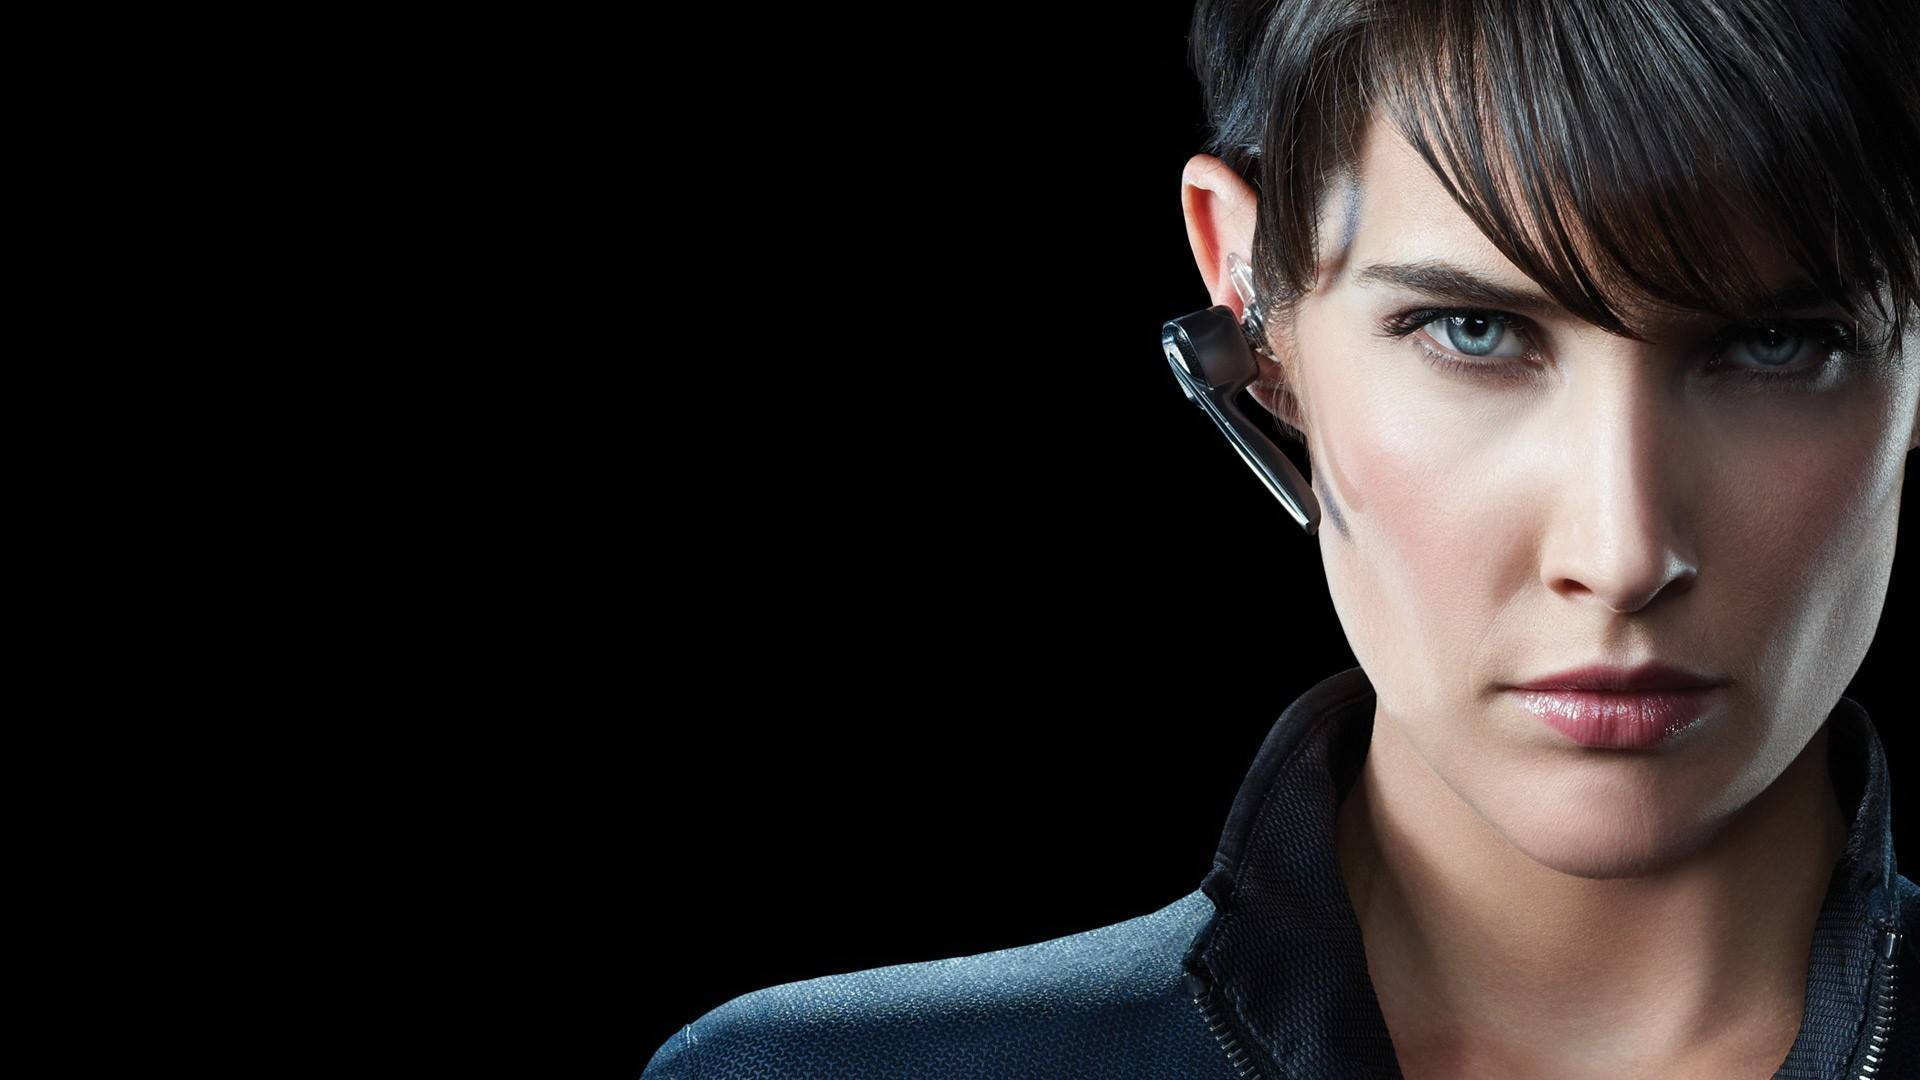 1920x1080 - Cobie Smulders Wallpapers 13